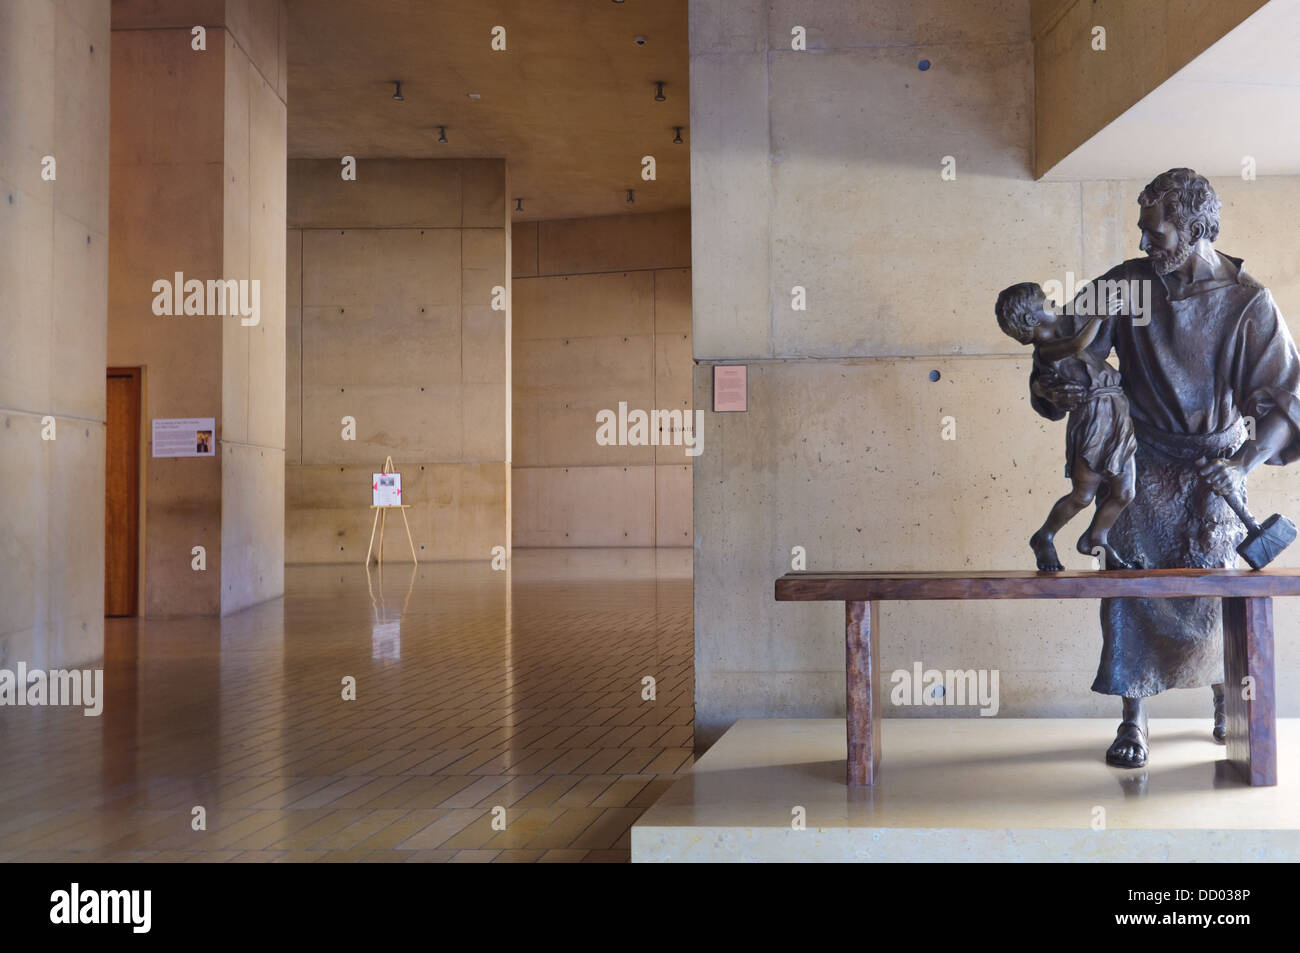 Sculpture dedicated to promoting adoption at the Our Lady of the Angels Cathedral - Stock Image